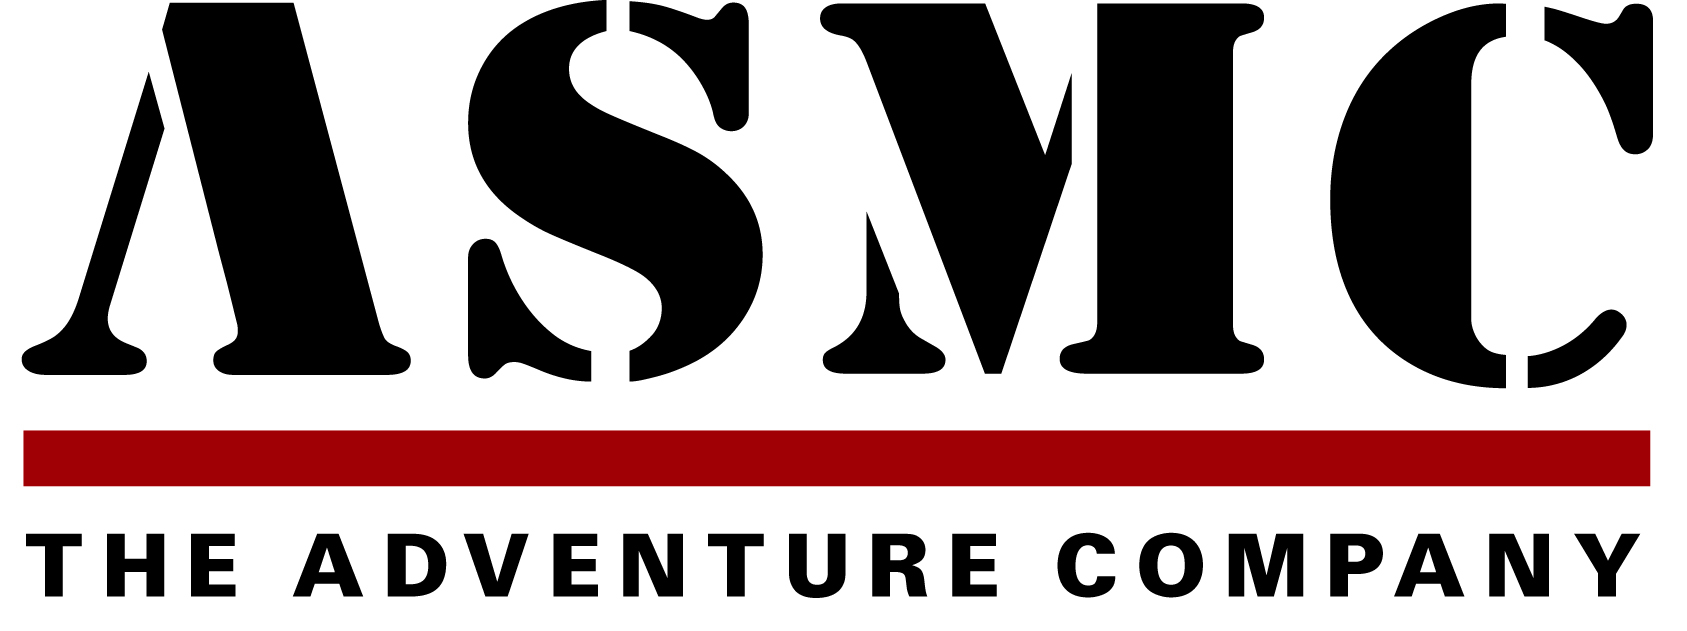 ASMC - The Adventure Company Coupon